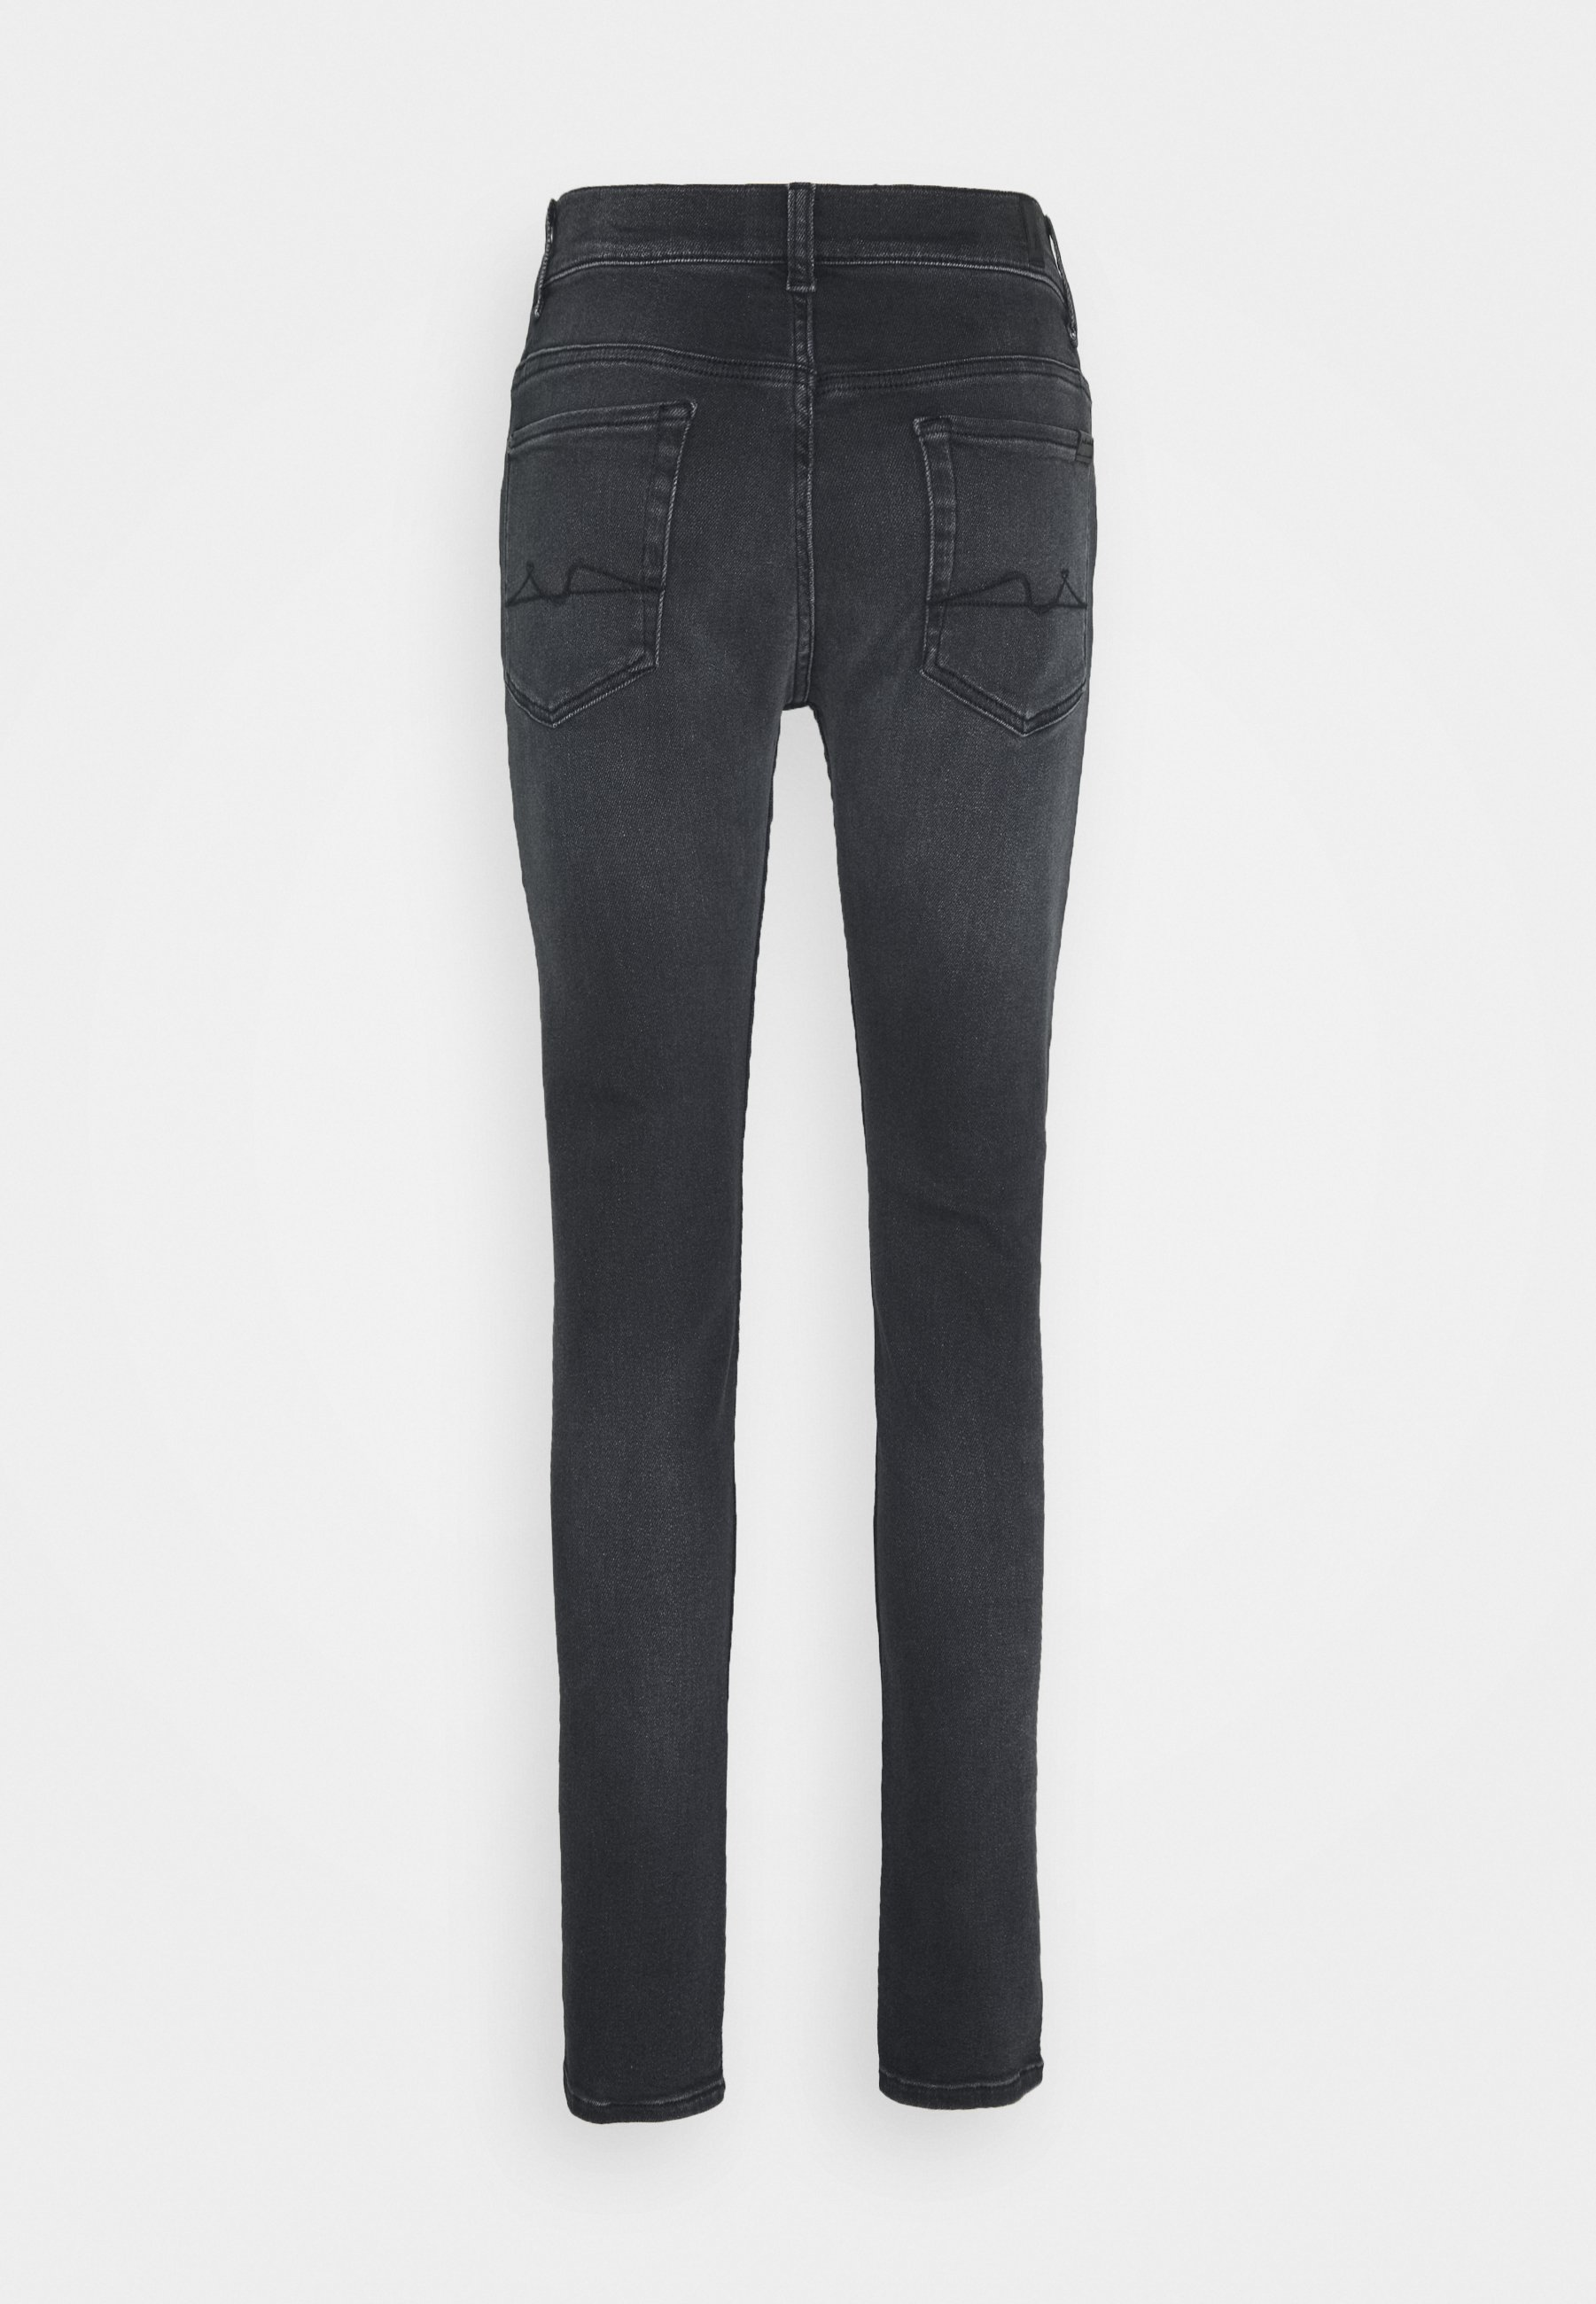 7 for all mankind RONNIE - Jeans slim fit - black